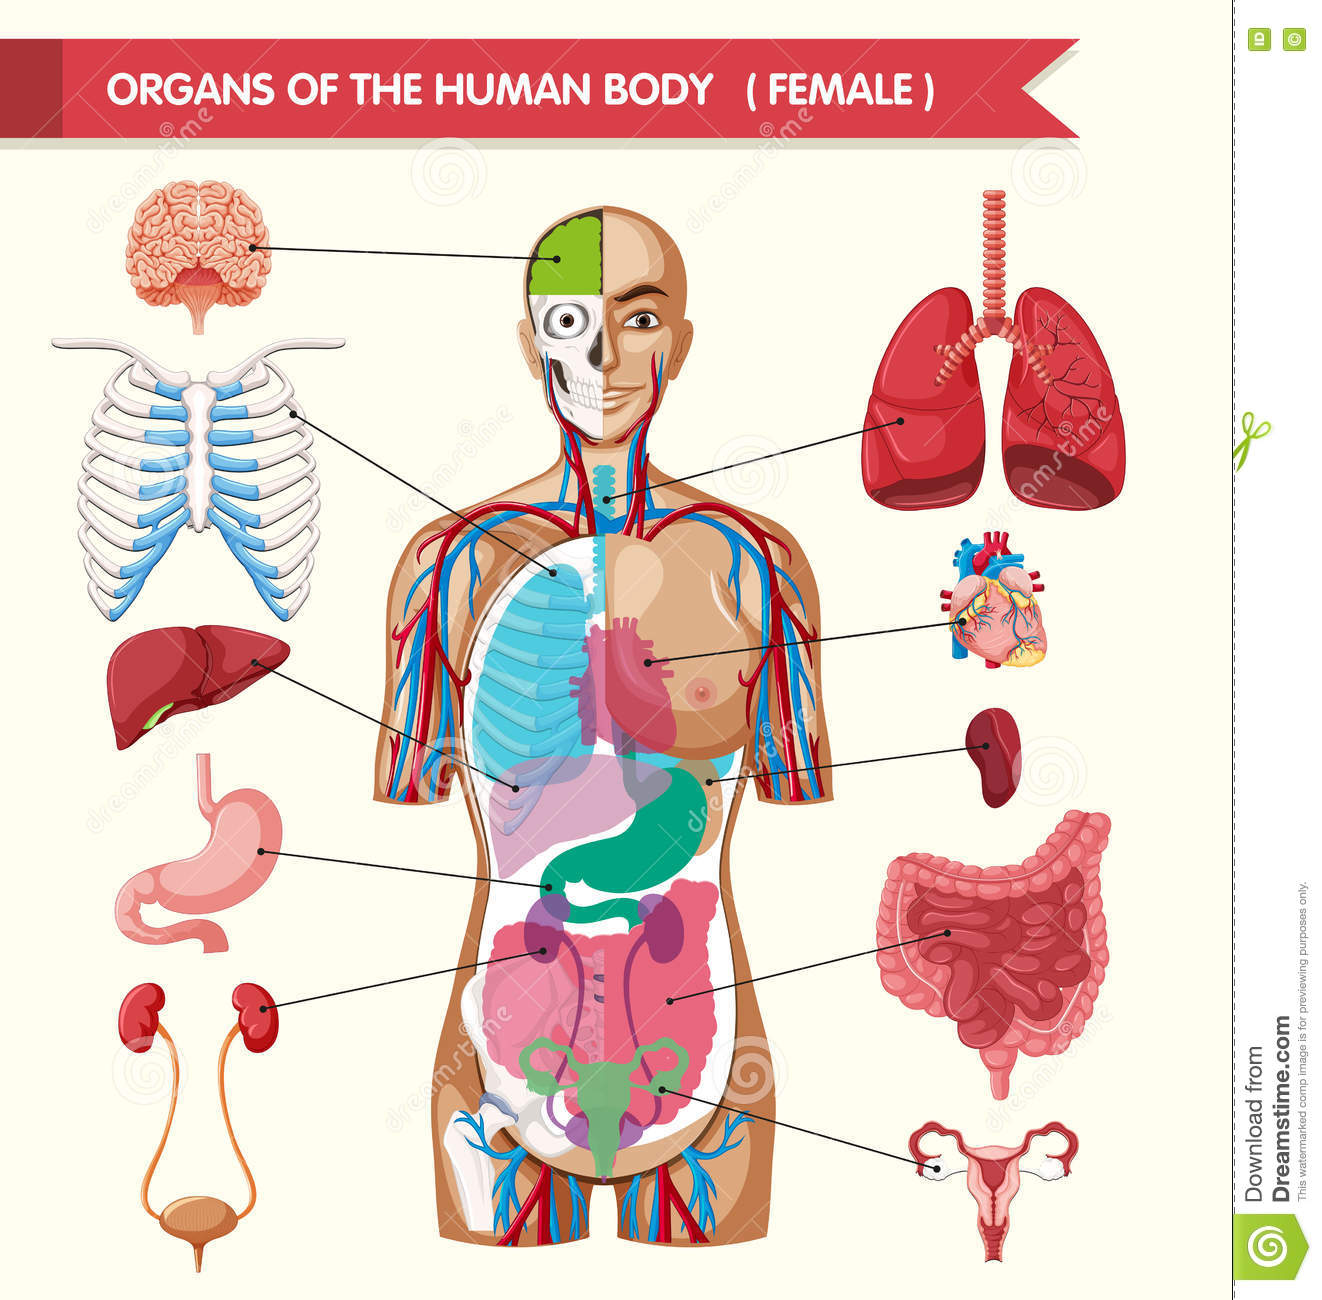 Organs Of The Human Body Diagram Stock Vector - Illustration of ...